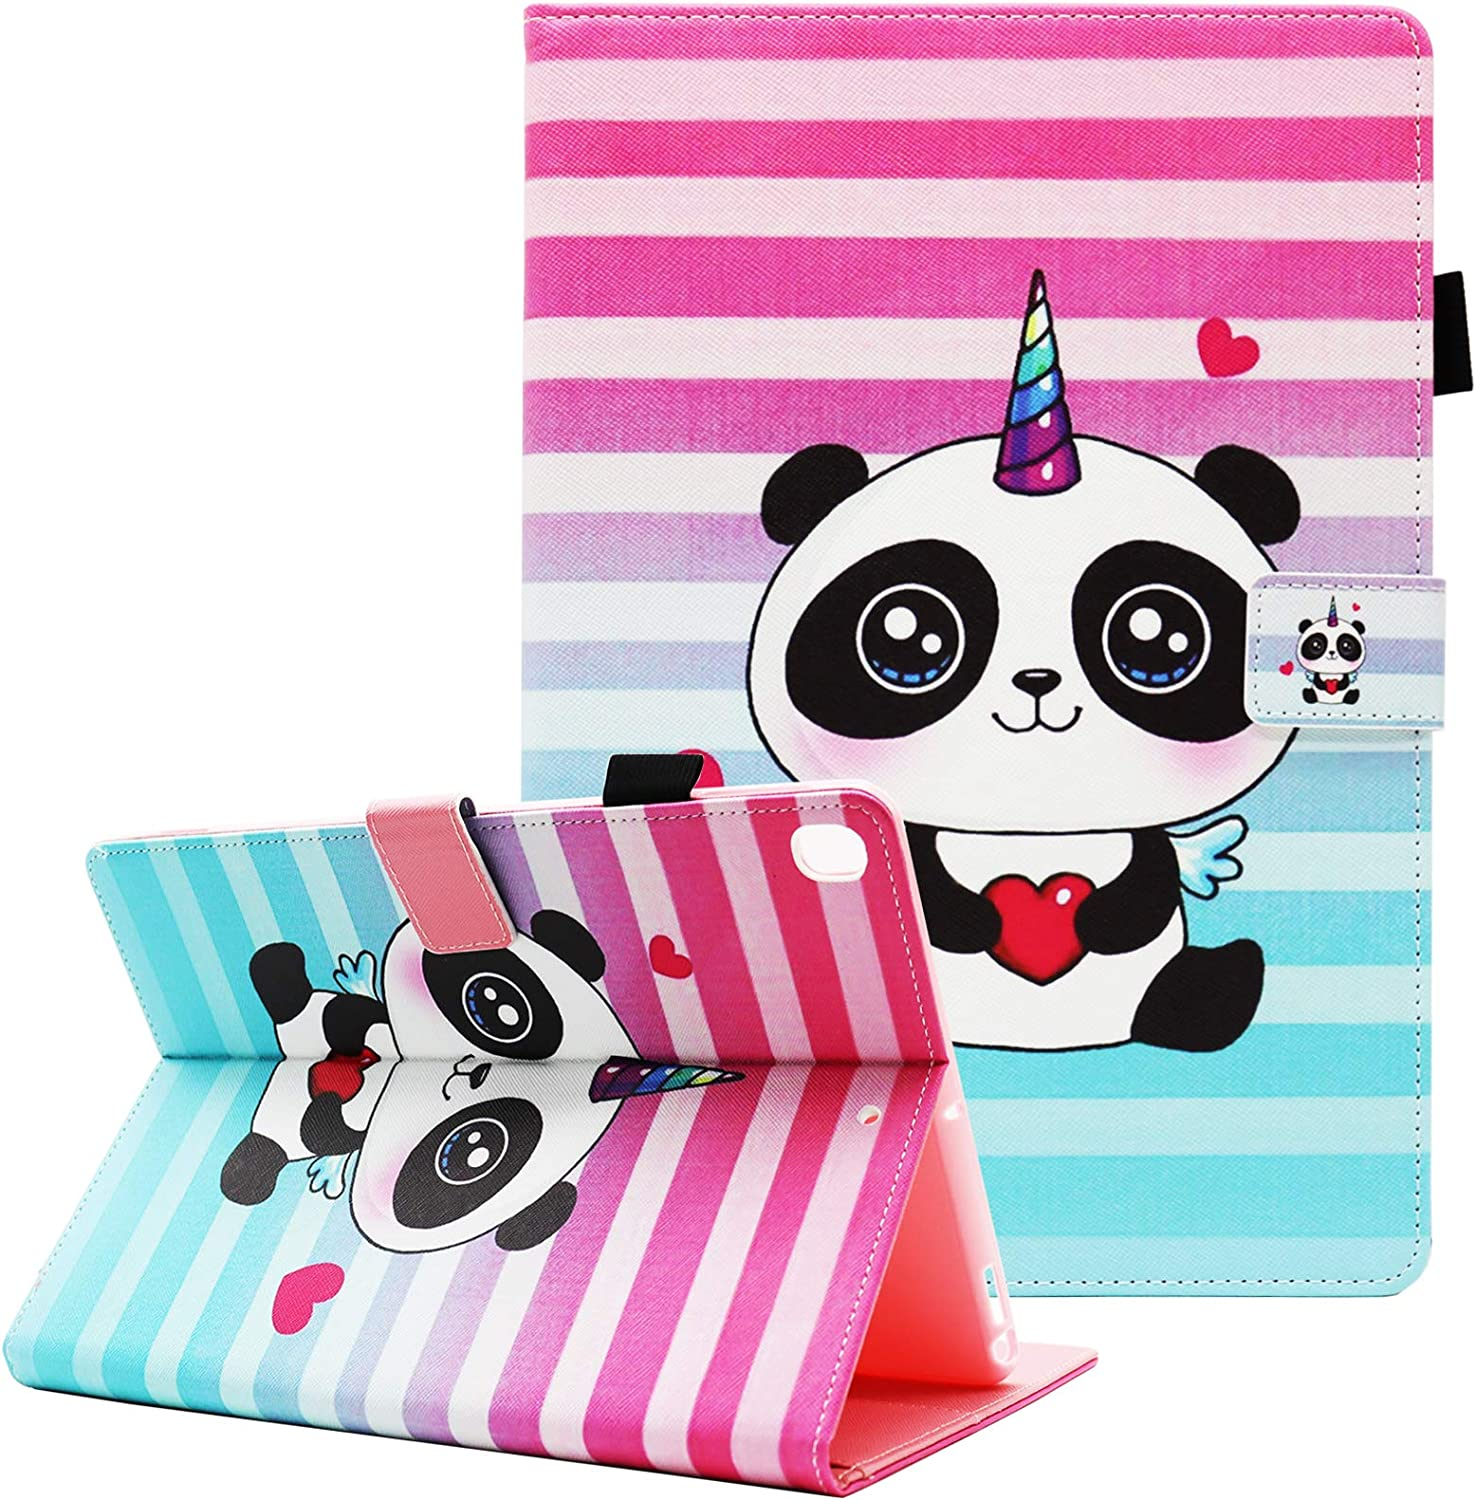 New iPad 10.2 Case 2020 iPad 8th Generation Case, iPad 10.2 Case 2019 iPad 7th Generation Case, Fvimi PU Leather Multi-Angle Folio Smart Stand Cover for iPad 10.2 Inch 8th 7th Gen, Cute Panda